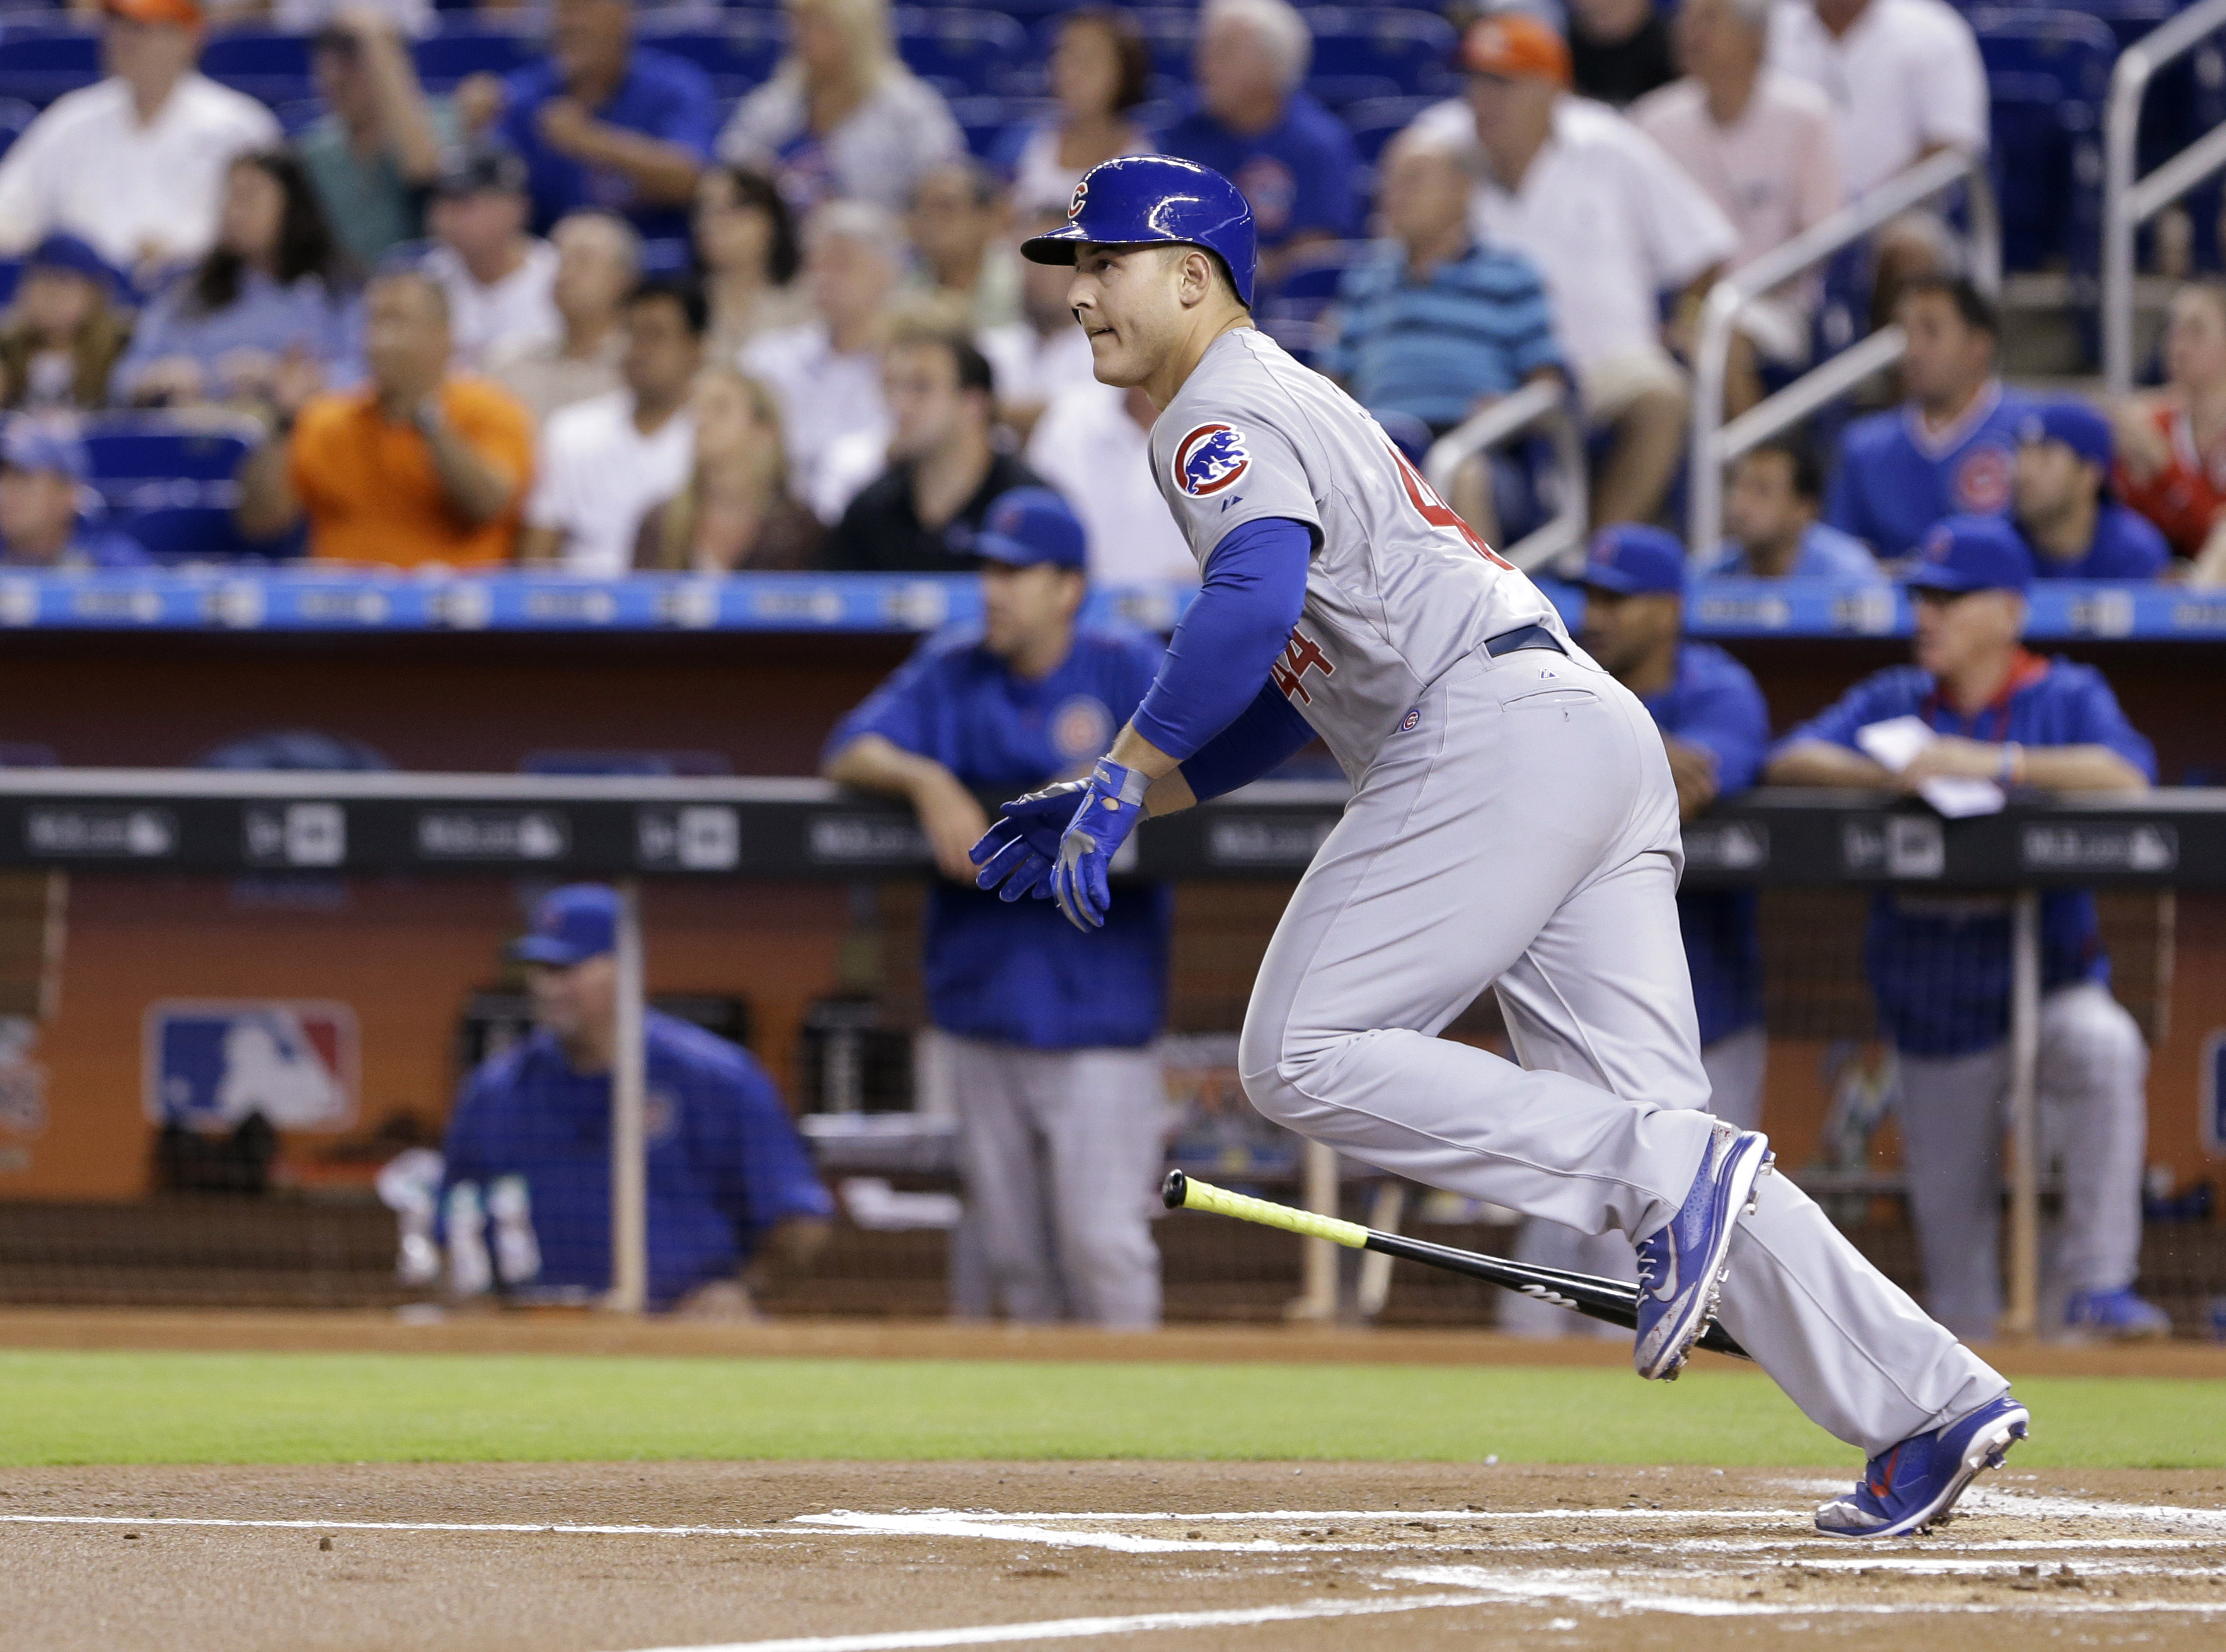 Chicago Cubs' Anthony Rizzo watches his hit as he runs to first during the first inning of a baseball game against the Miami Marlins, Monday, June 1, 2015, in Miami. Rizzo doubled scoring Dexter Fowler. (AP Photo/Wilfredo Lee)